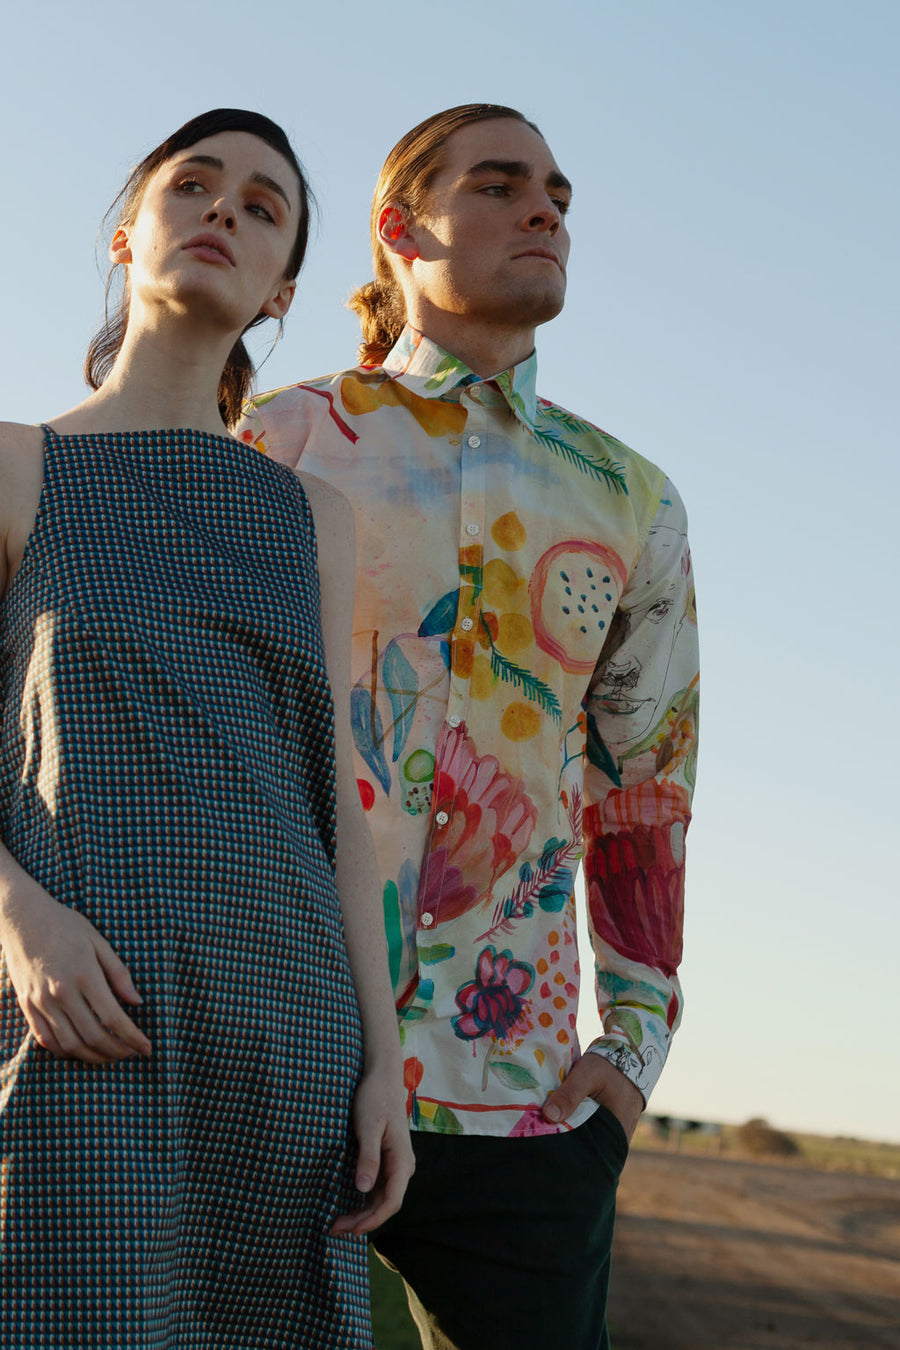 HEW X KAT Mens Long Sleeve Shirt in Proteus Fields